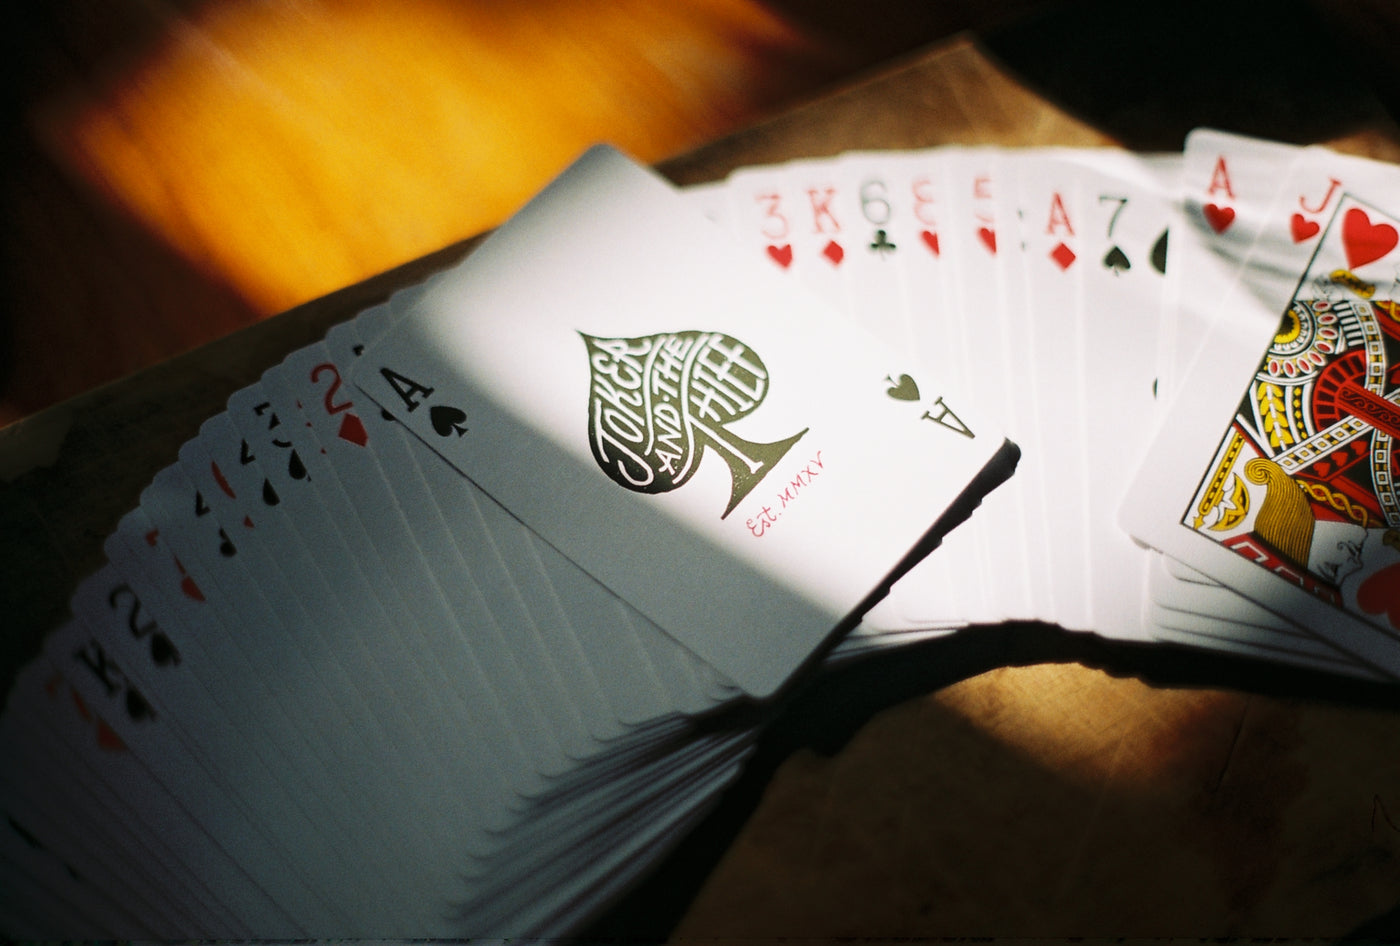 Ribbon spread of Joker and the Thief's latest deck of playing cards. Shot using an analogue film camera